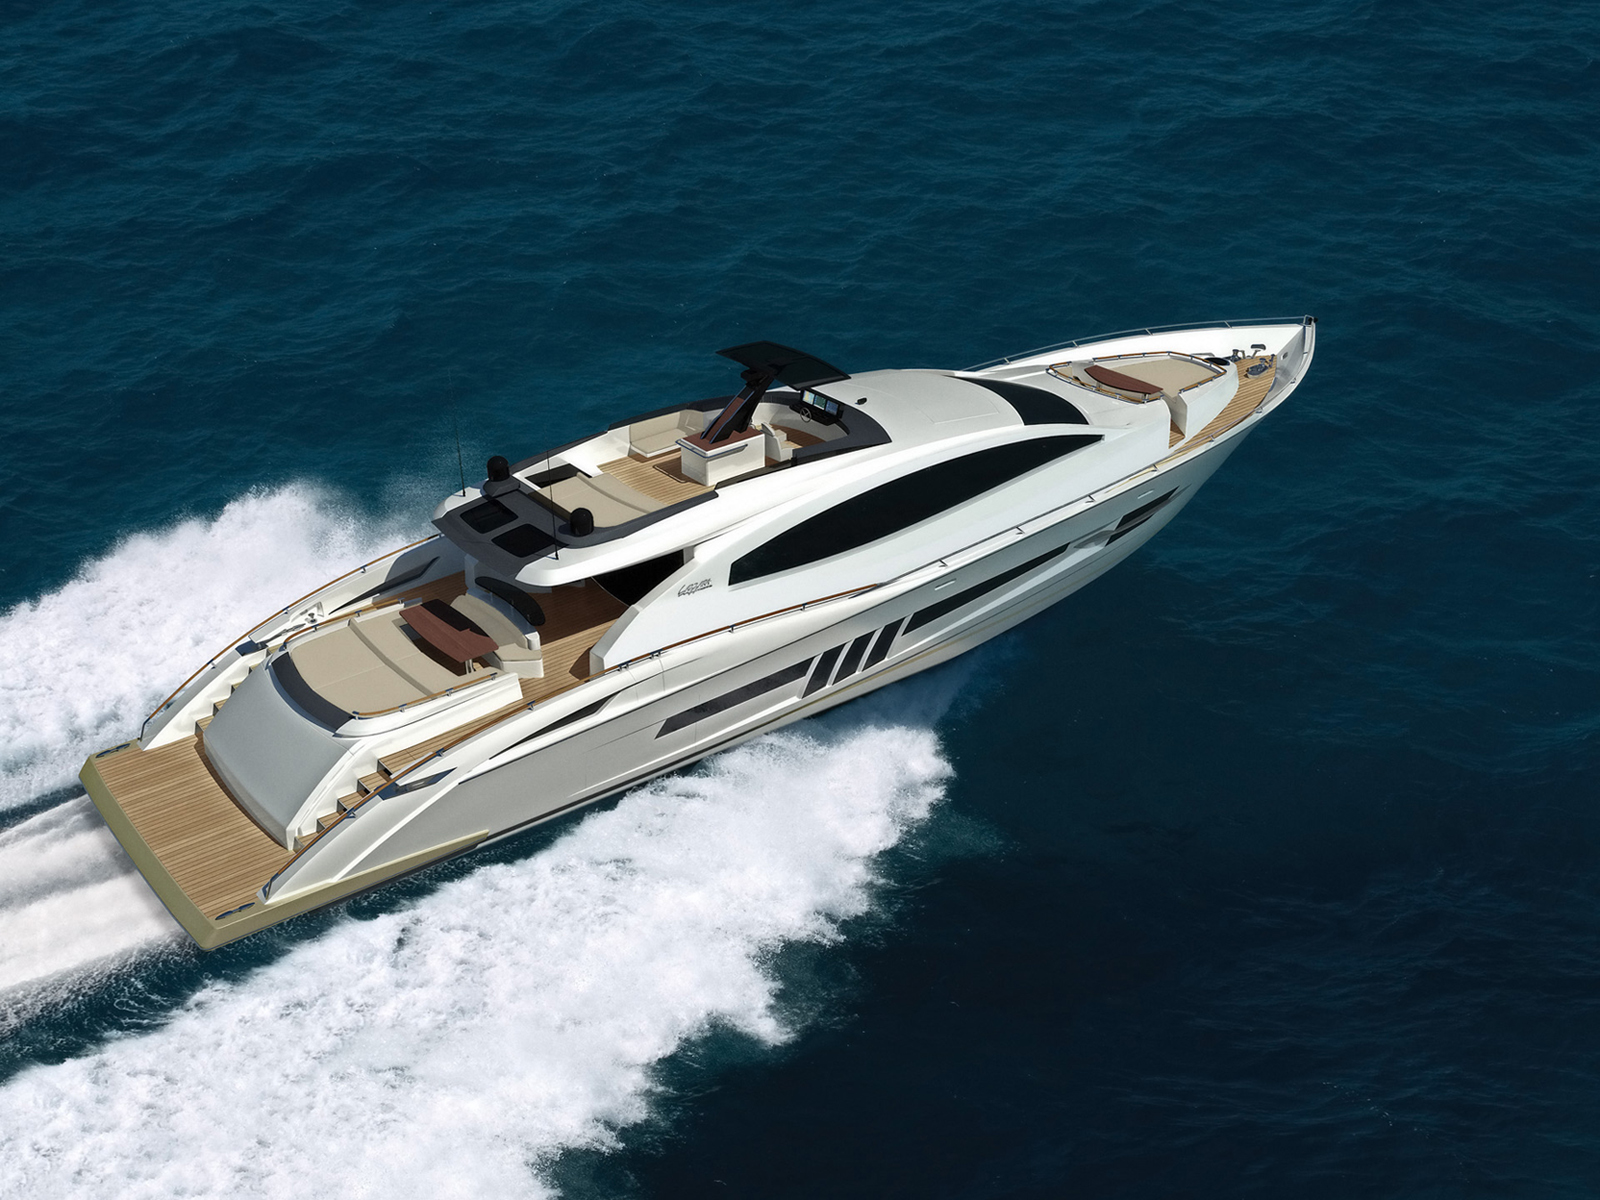 Luxury Yachts - azee